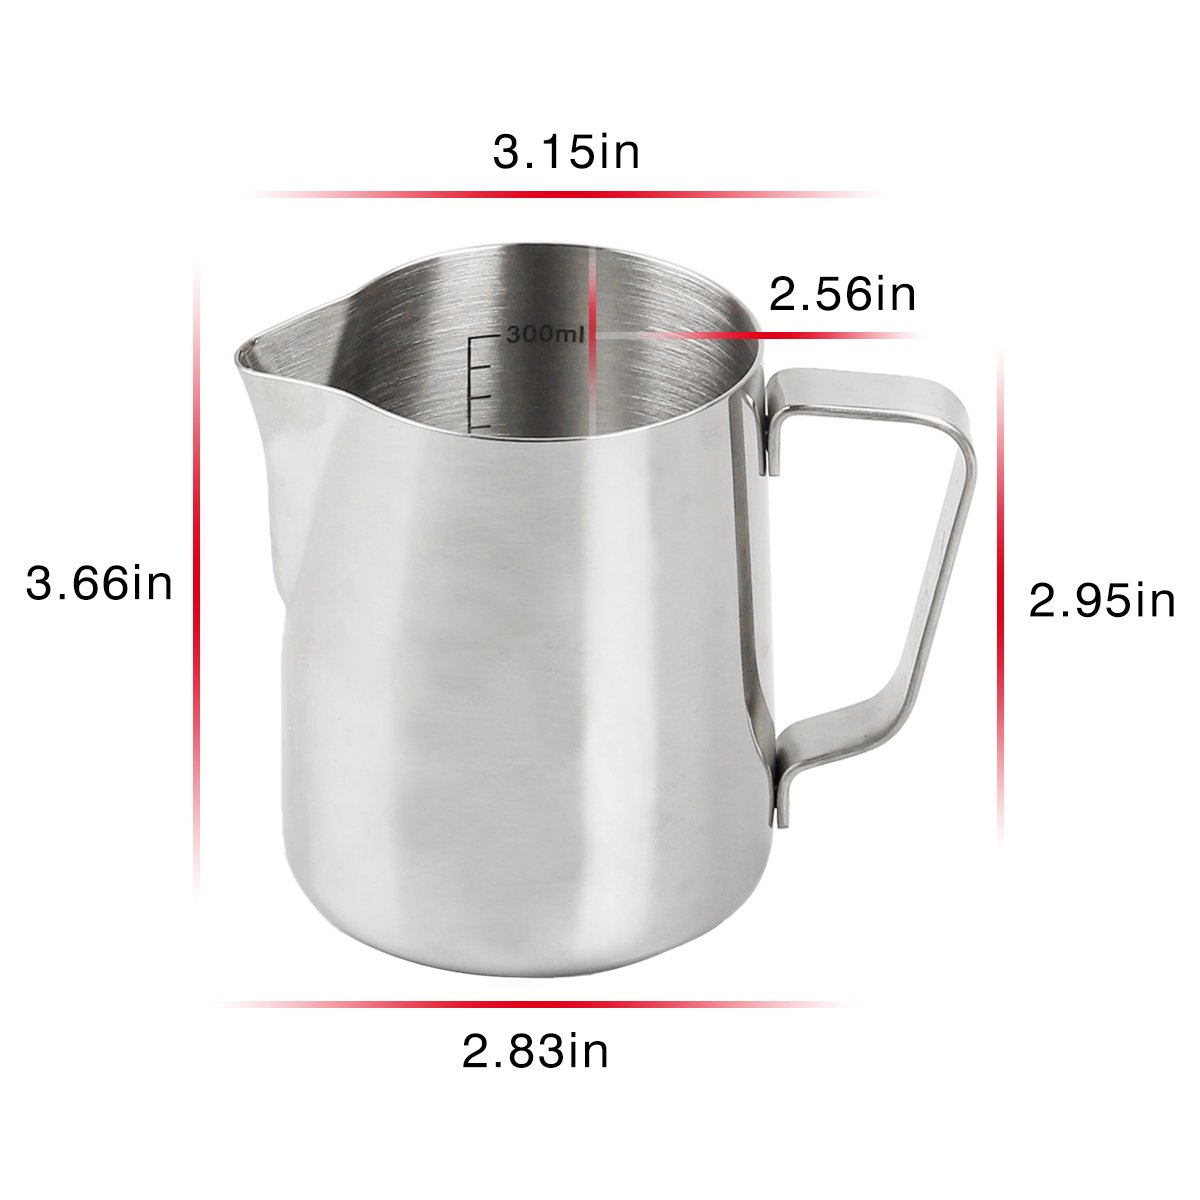 Ndier Stainless Steel Milk Frothing Pitcher 350ml/12 oz Milk Frother Cup with Measurement Line and Sharp Mouth - Perfect for Coffe Latte Cappuccino Making